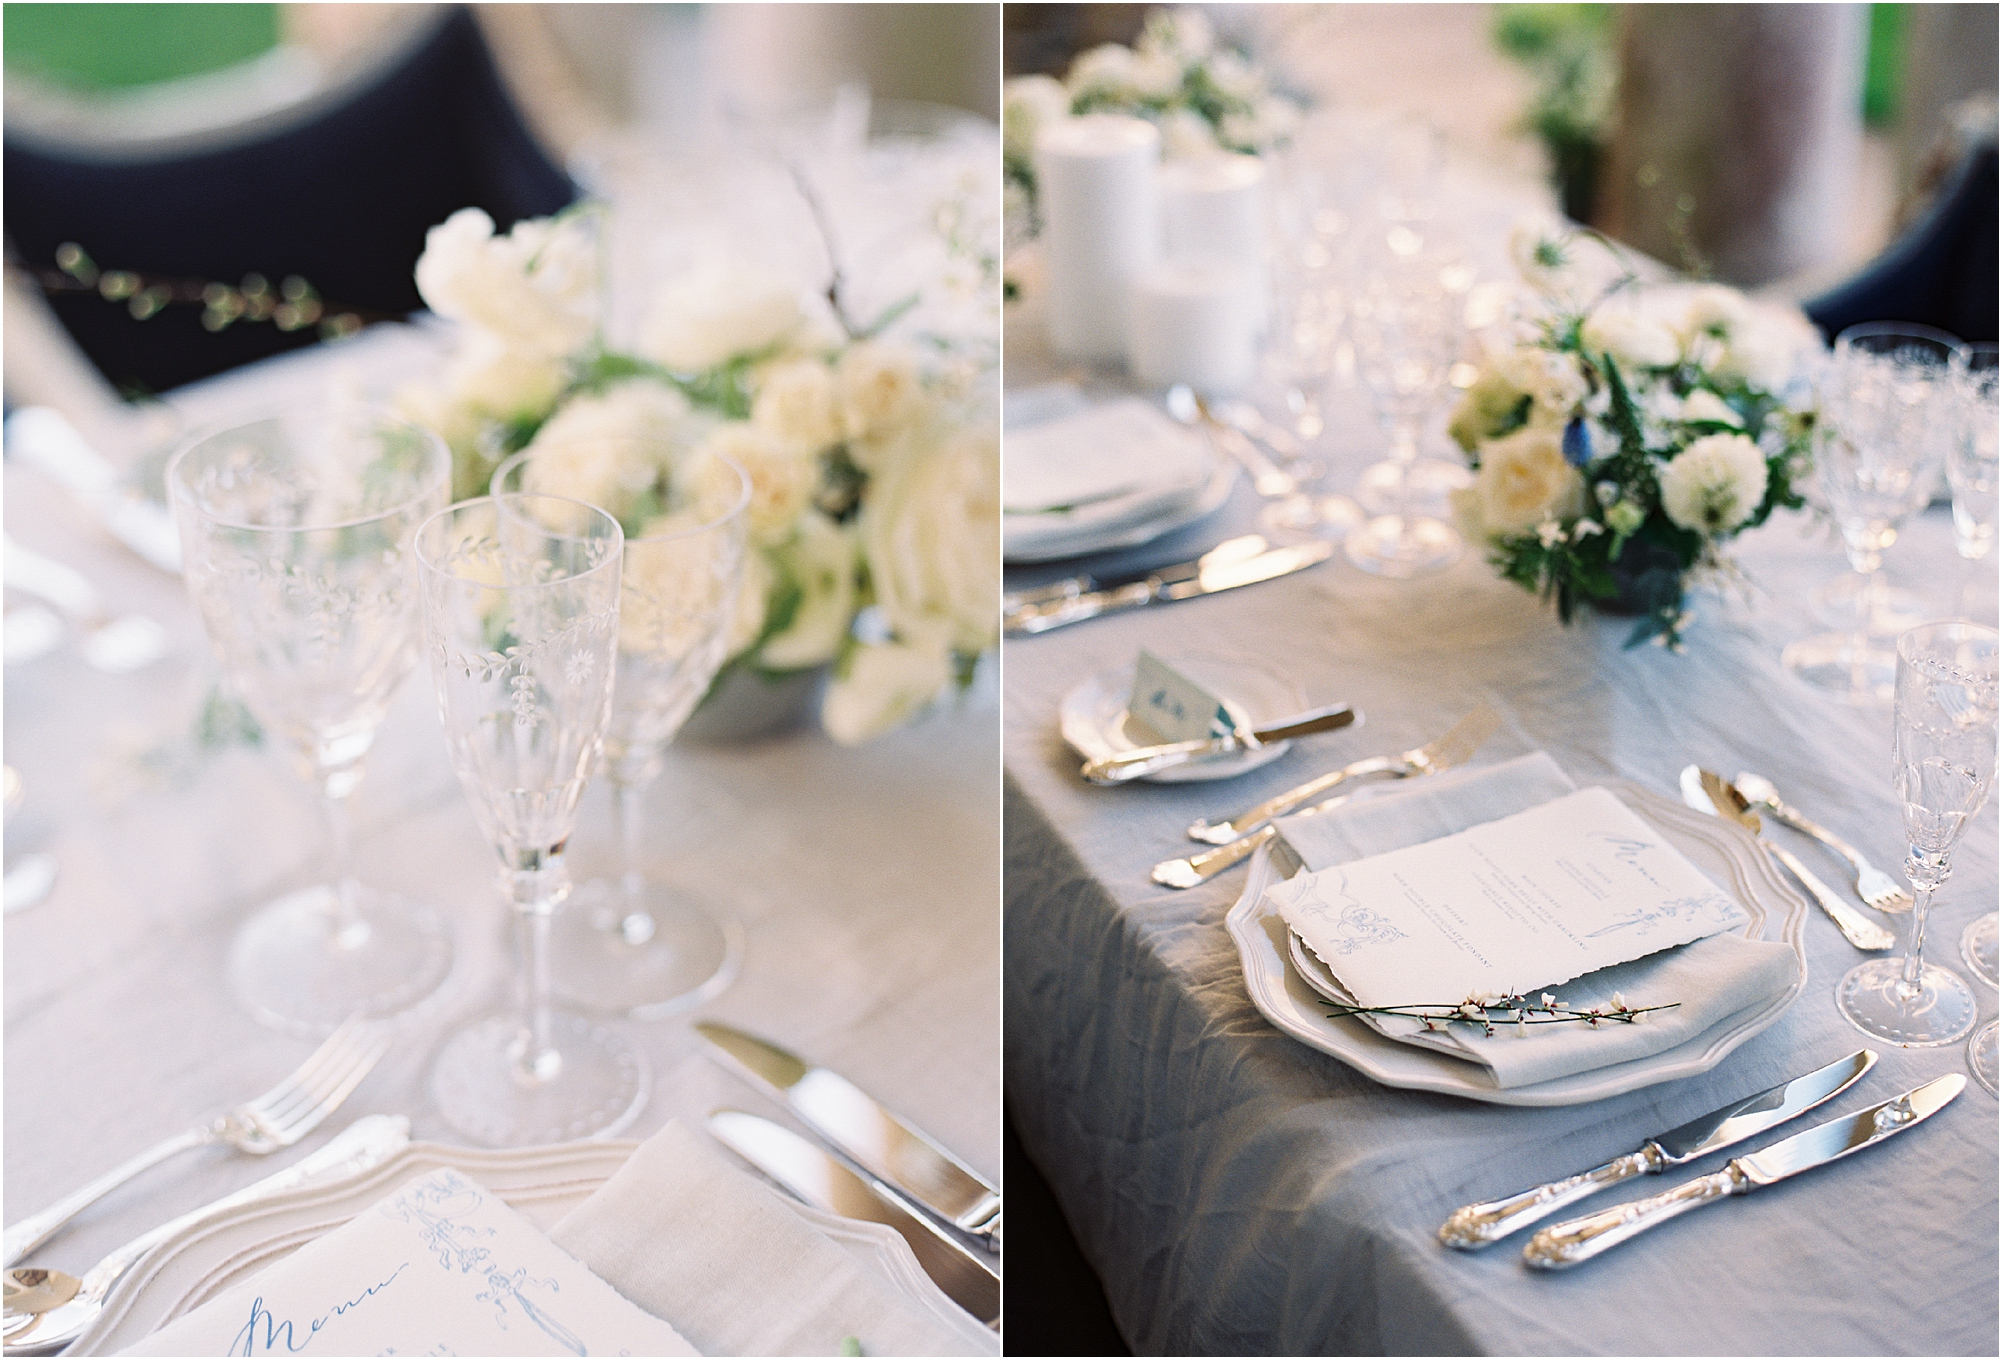 Table setting on table at Somerley House wedding